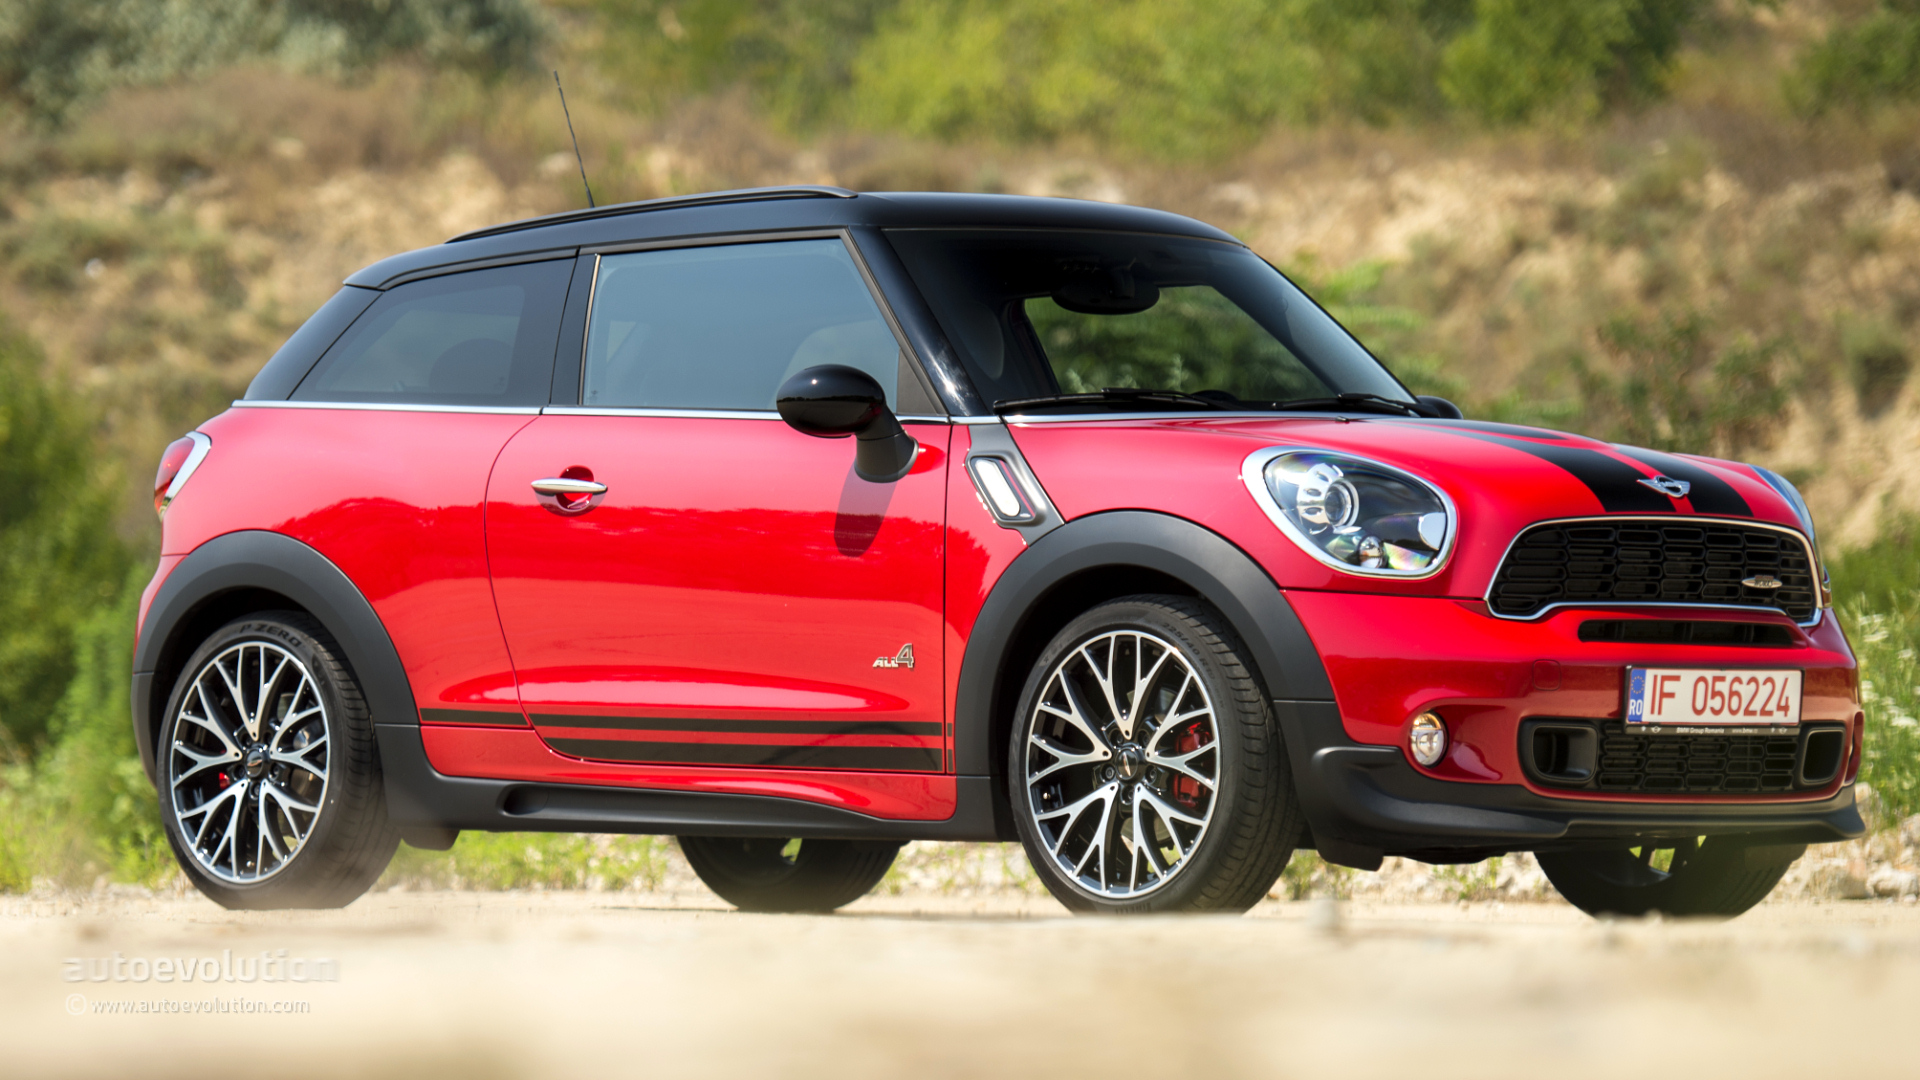 2015 mini john cooper works all4 paceman review autoevolution. Black Bedroom Furniture Sets. Home Design Ideas